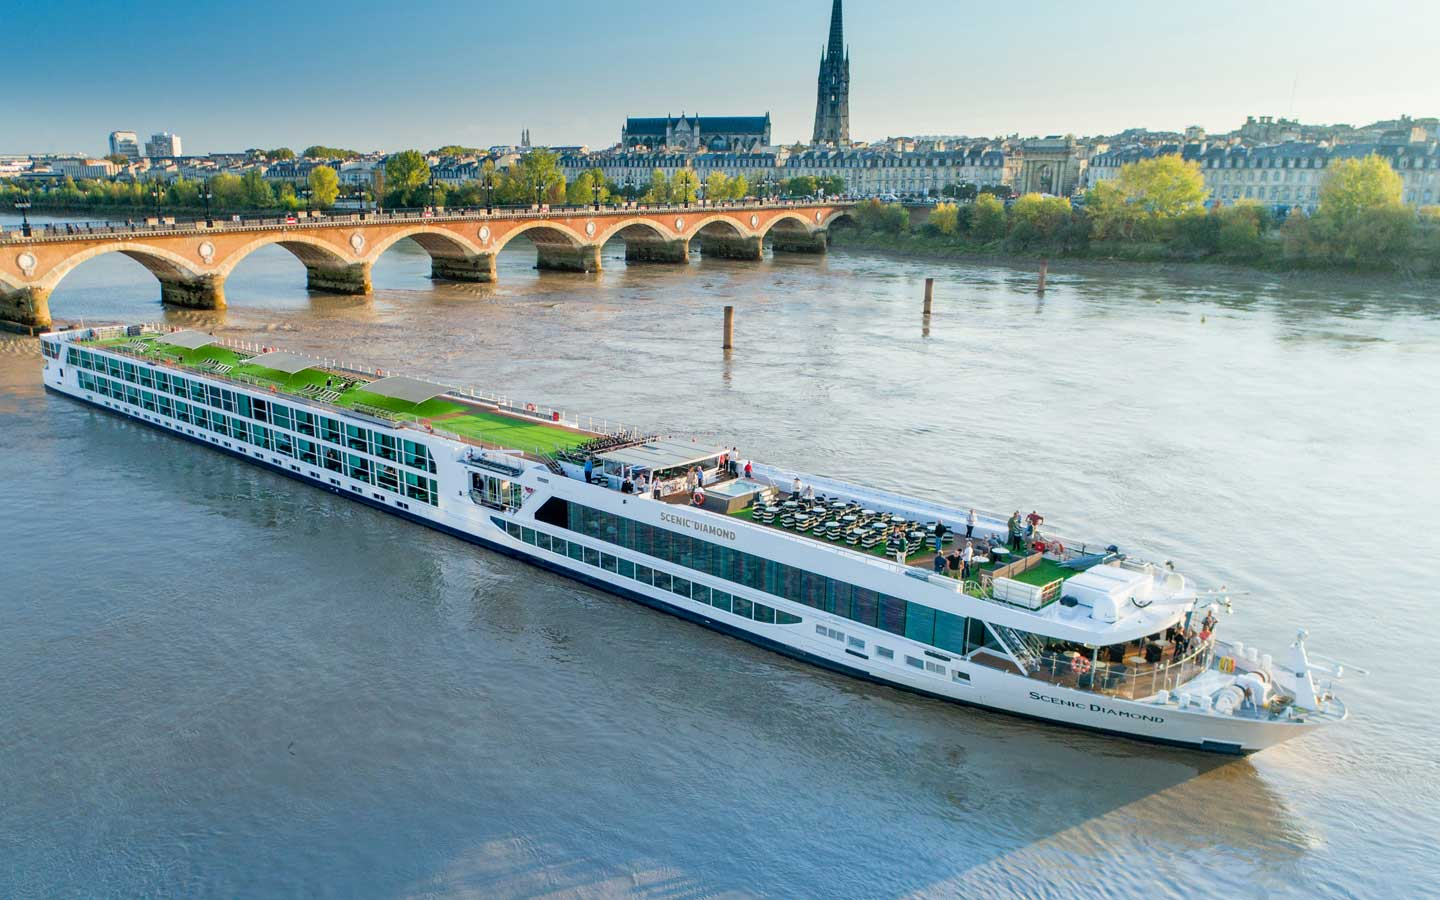 Scenic offers some of the most luxurious river cruises; their river ships are sleek and modern.